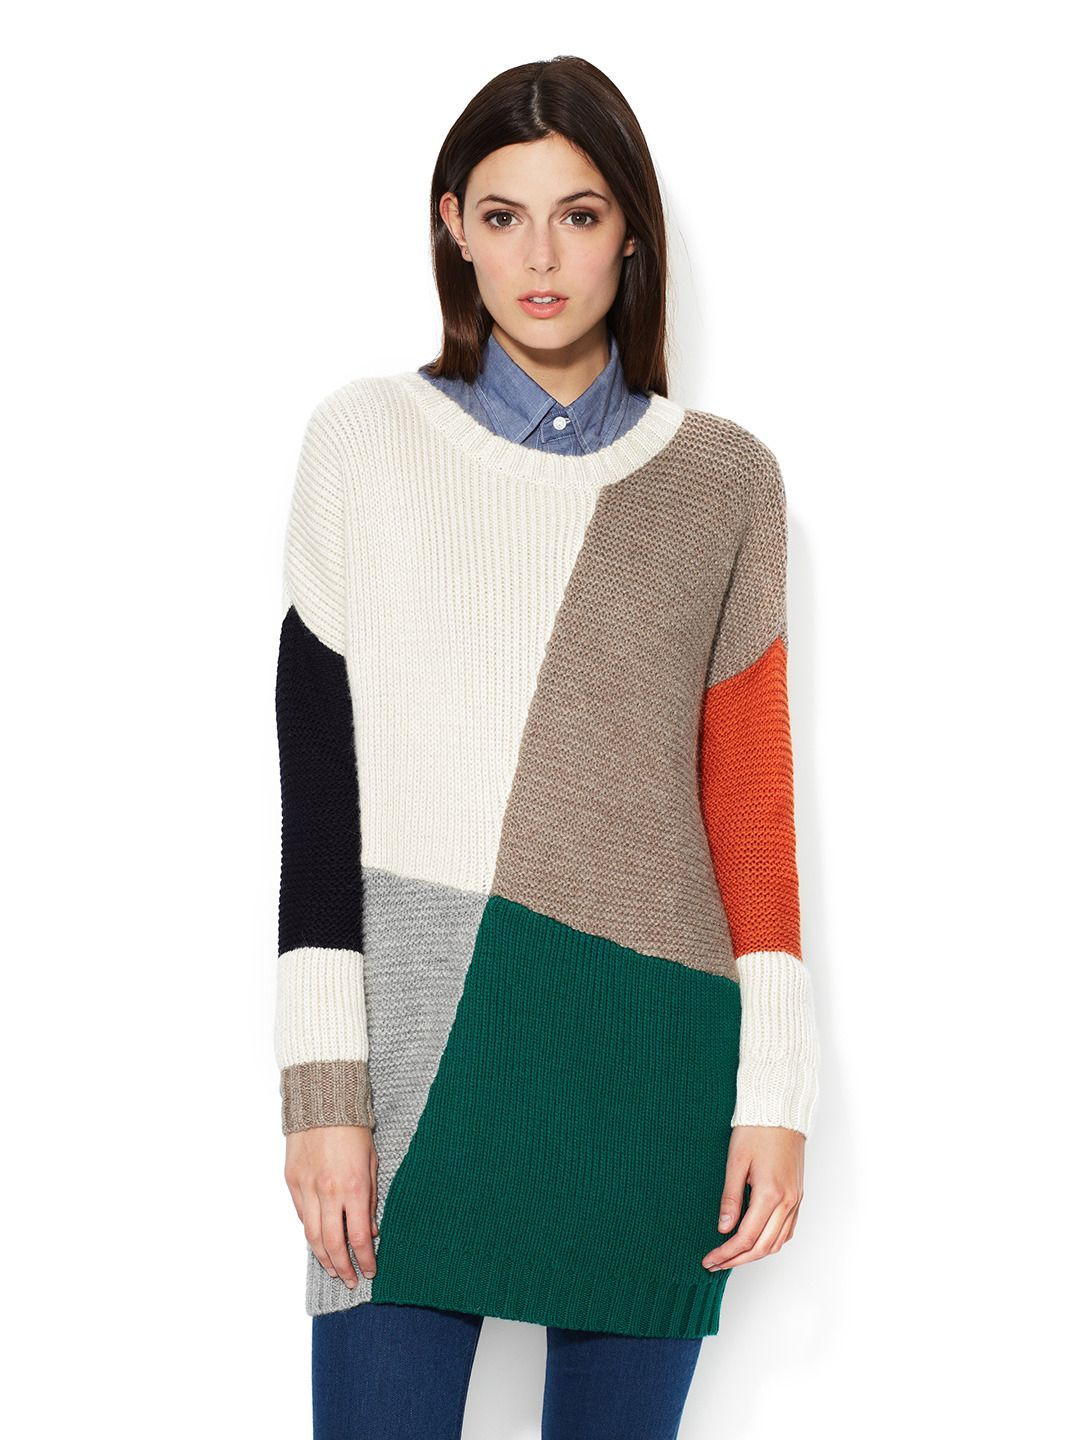 2558de567 Blanket Baby Alpaca Colorblocked Sweater by Boy by Band of Outsiders ...